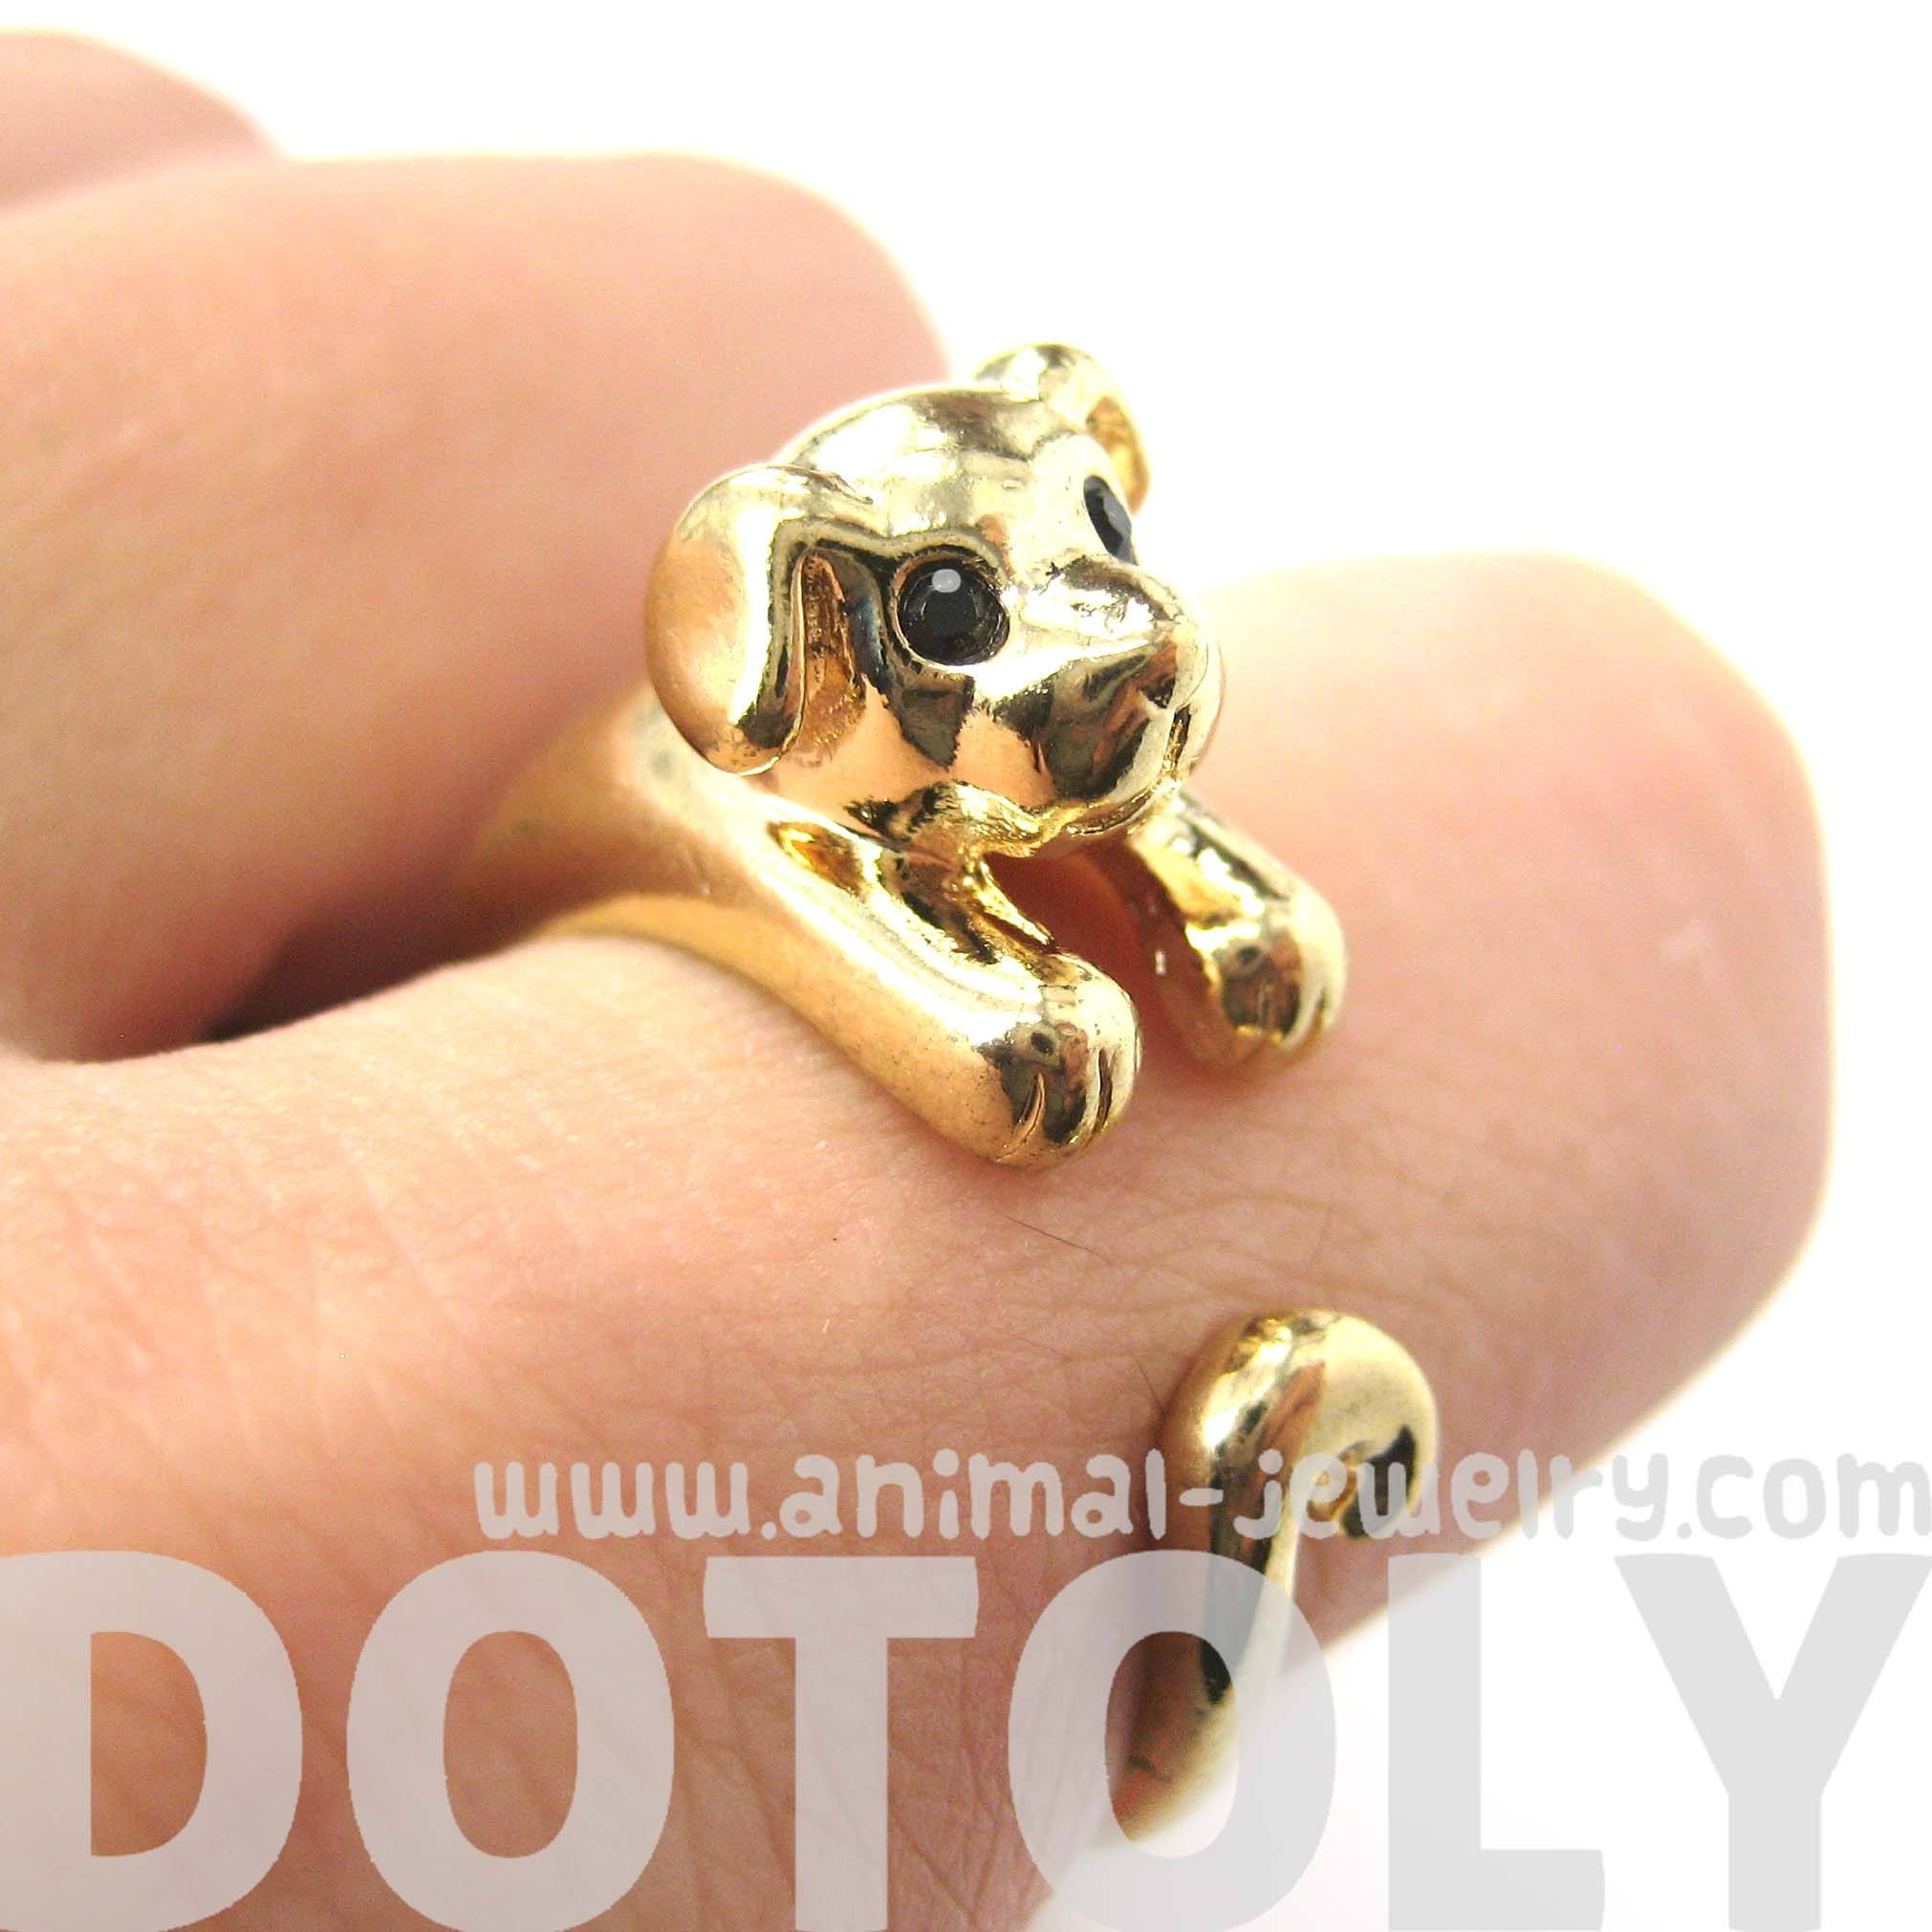 puppy-dog-animal-wrap-around-ring-in-shiny-gold-us-sizes-4-to-9